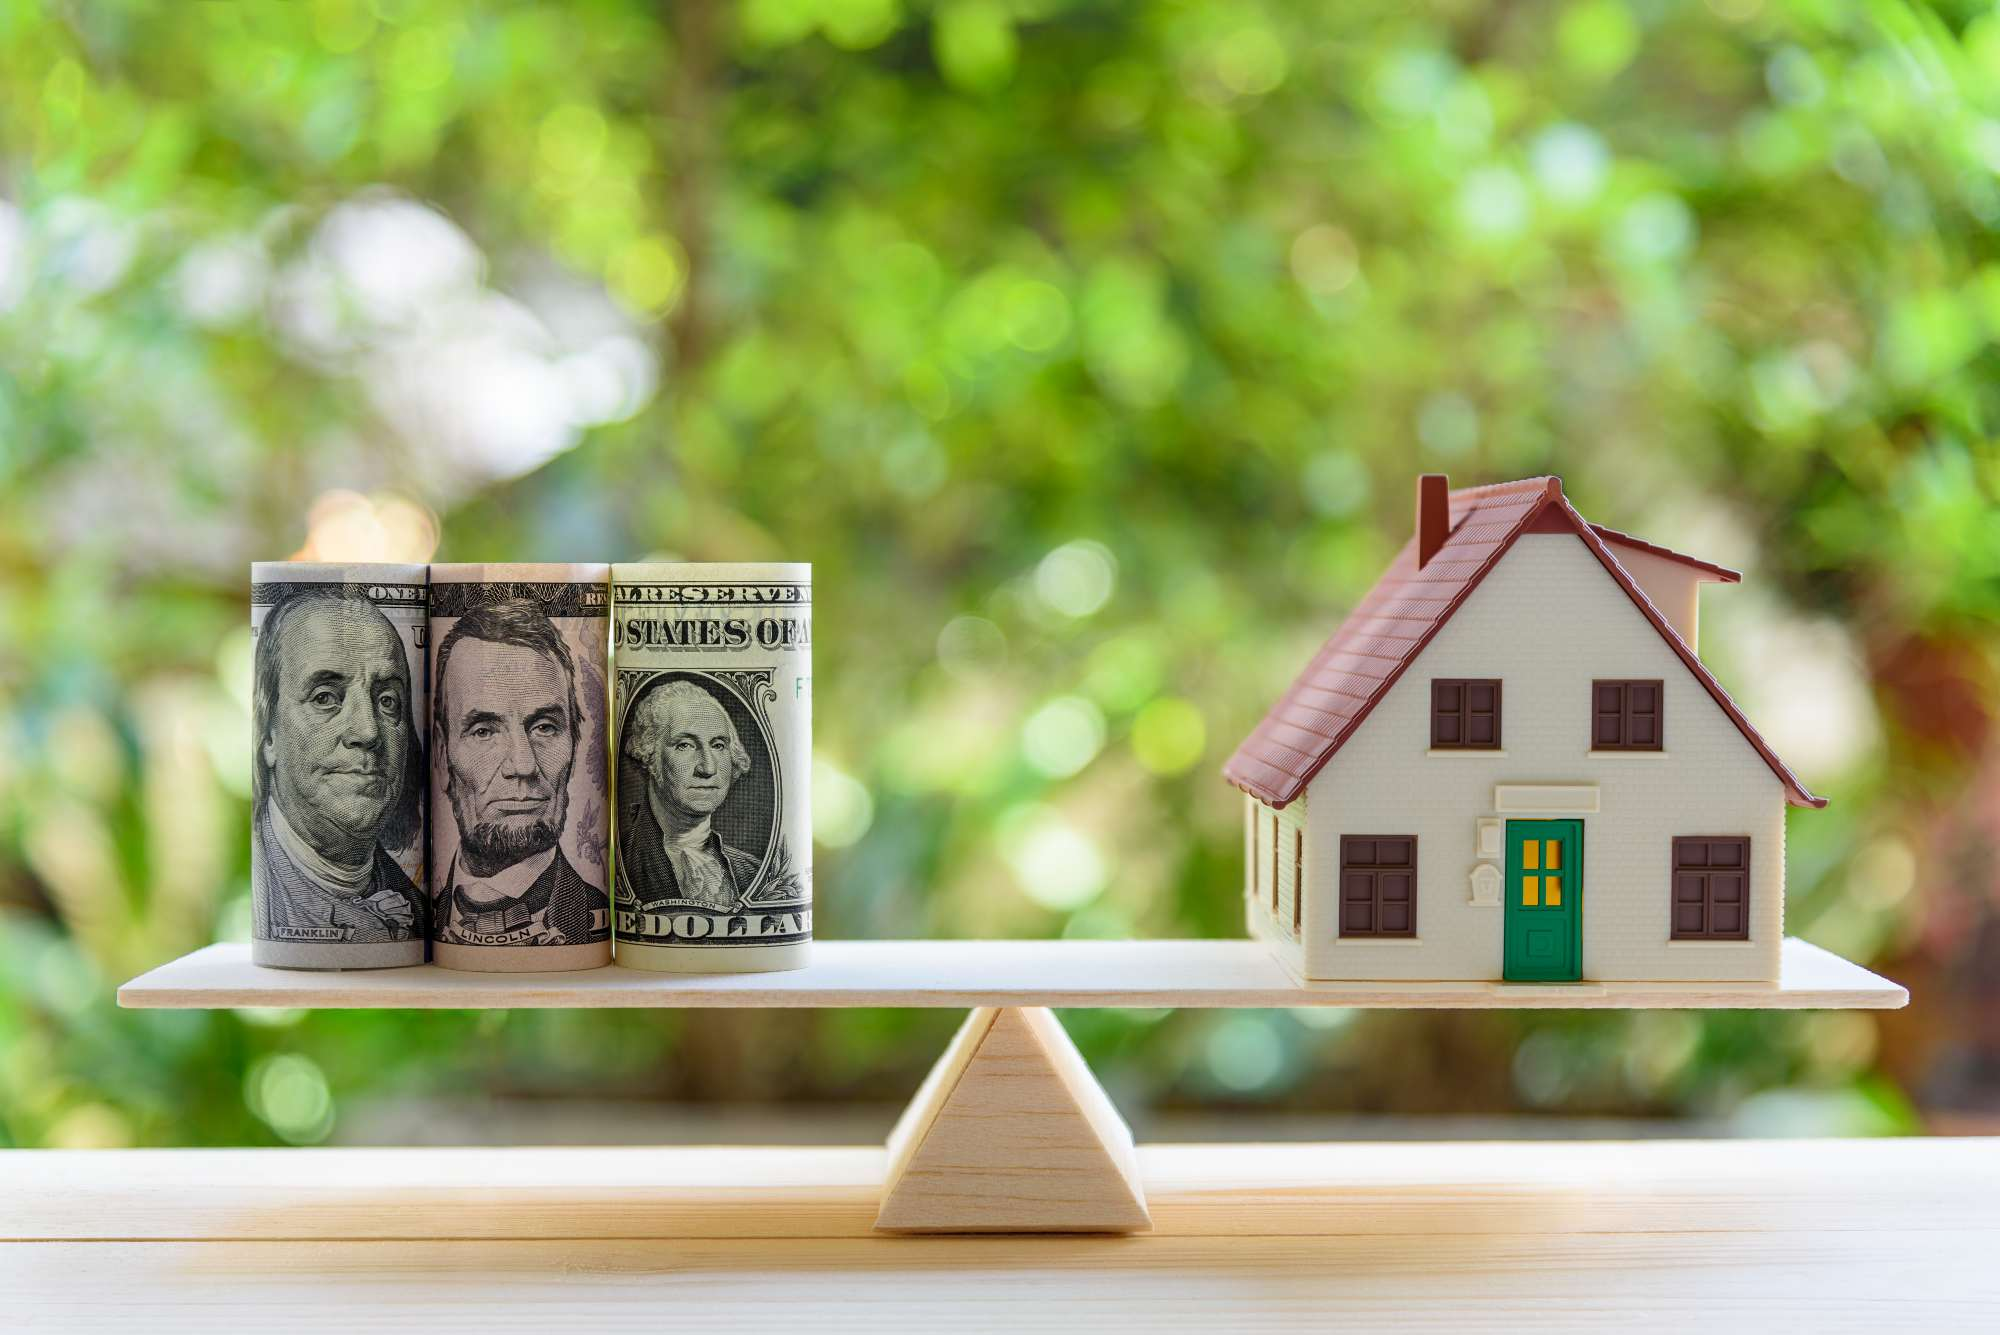 Homeowner's insurance protects a prime asset